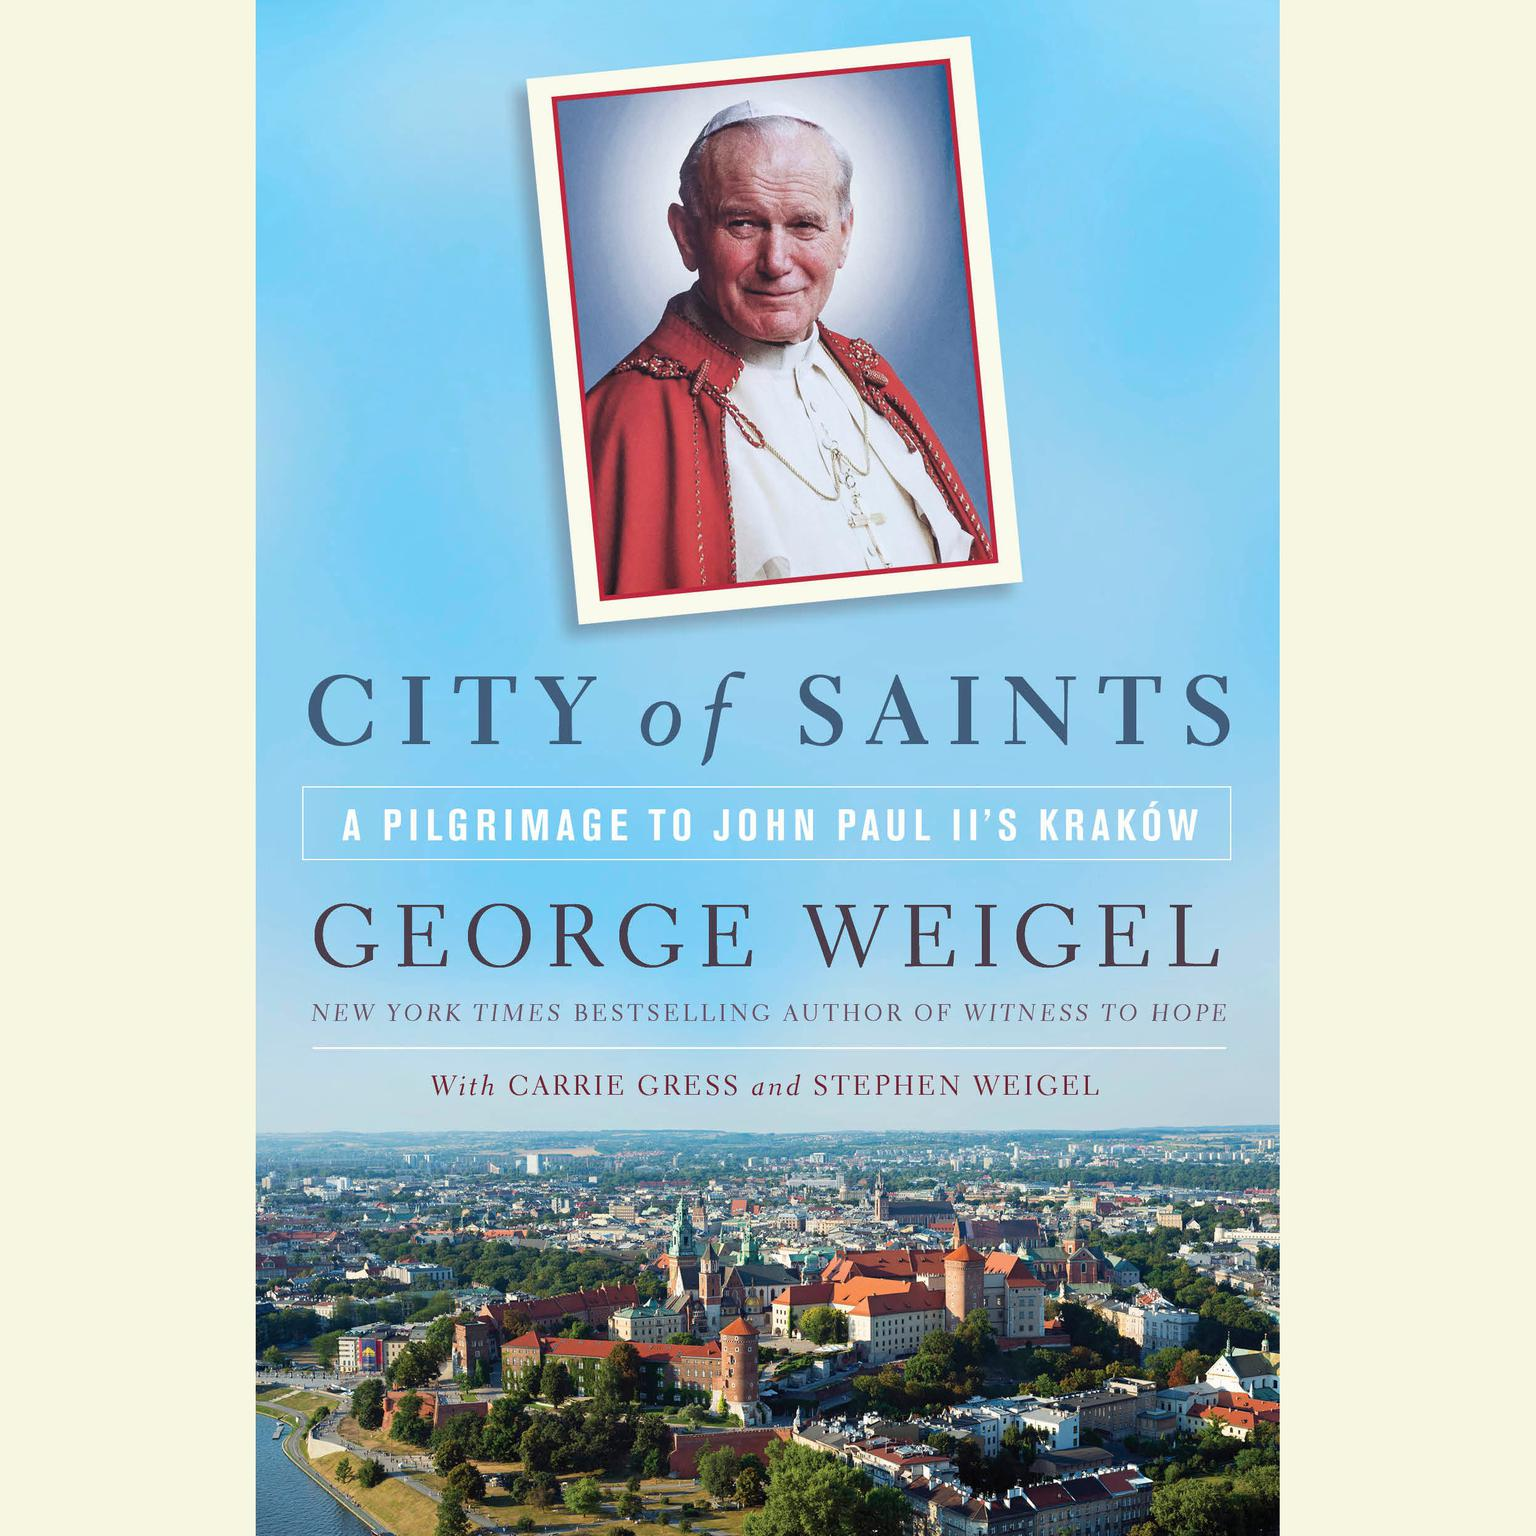 Printable City of Saints: A Pilgrimage to John Paul II's Kraków Audiobook Cover Art